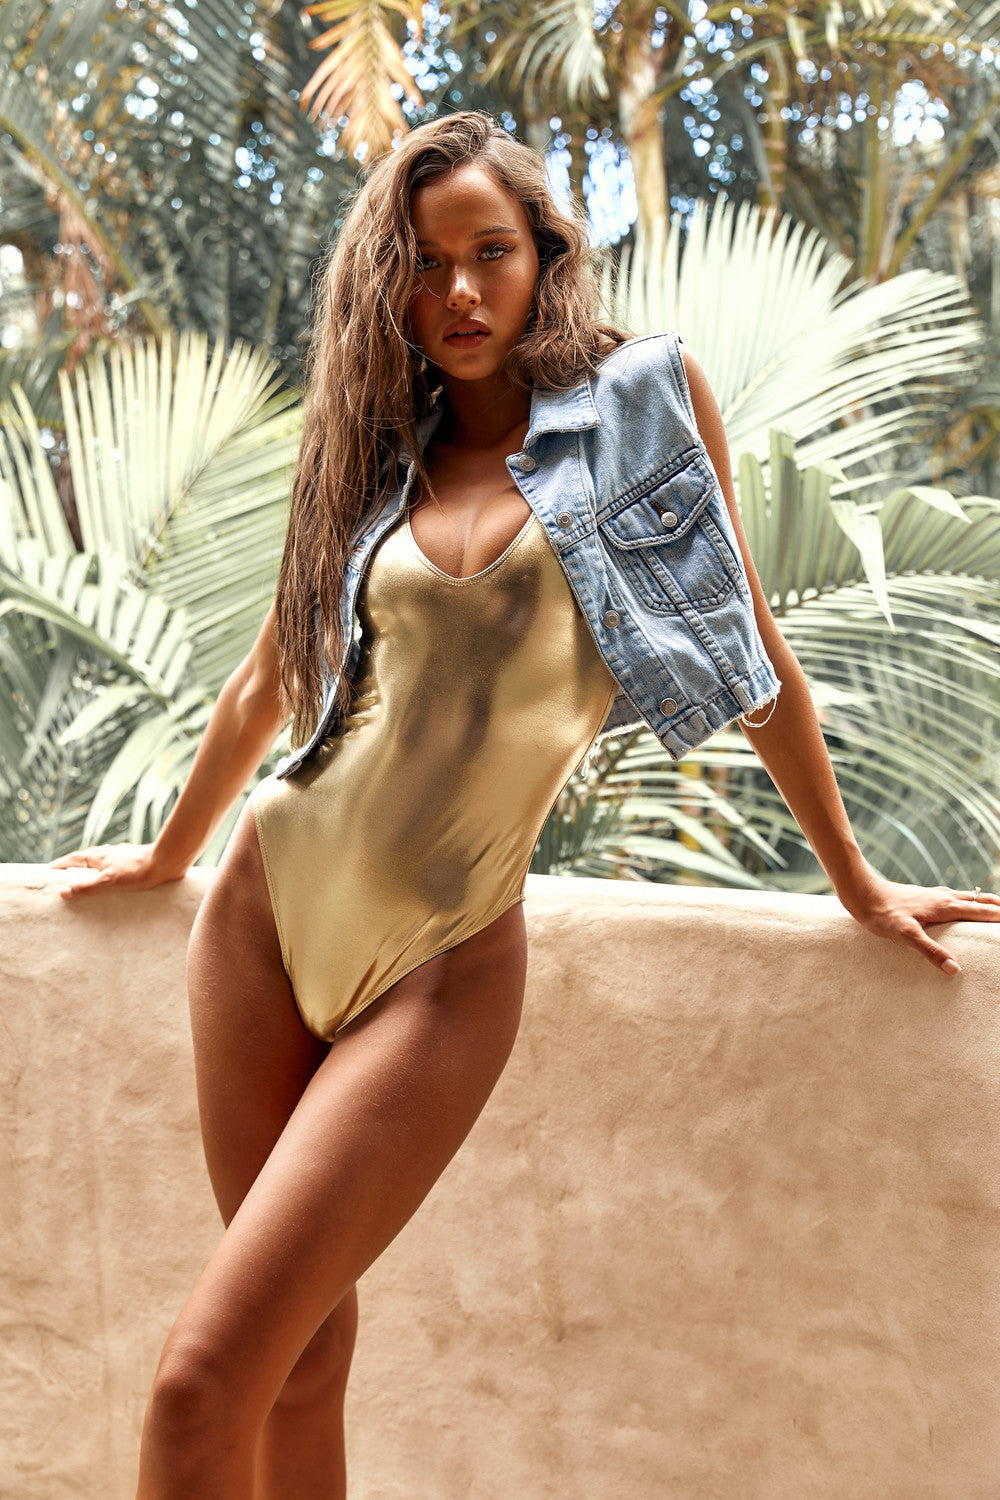 Isabelle Mathers wearing the Glam Gold One Piece Bodysuit under a denim jacket